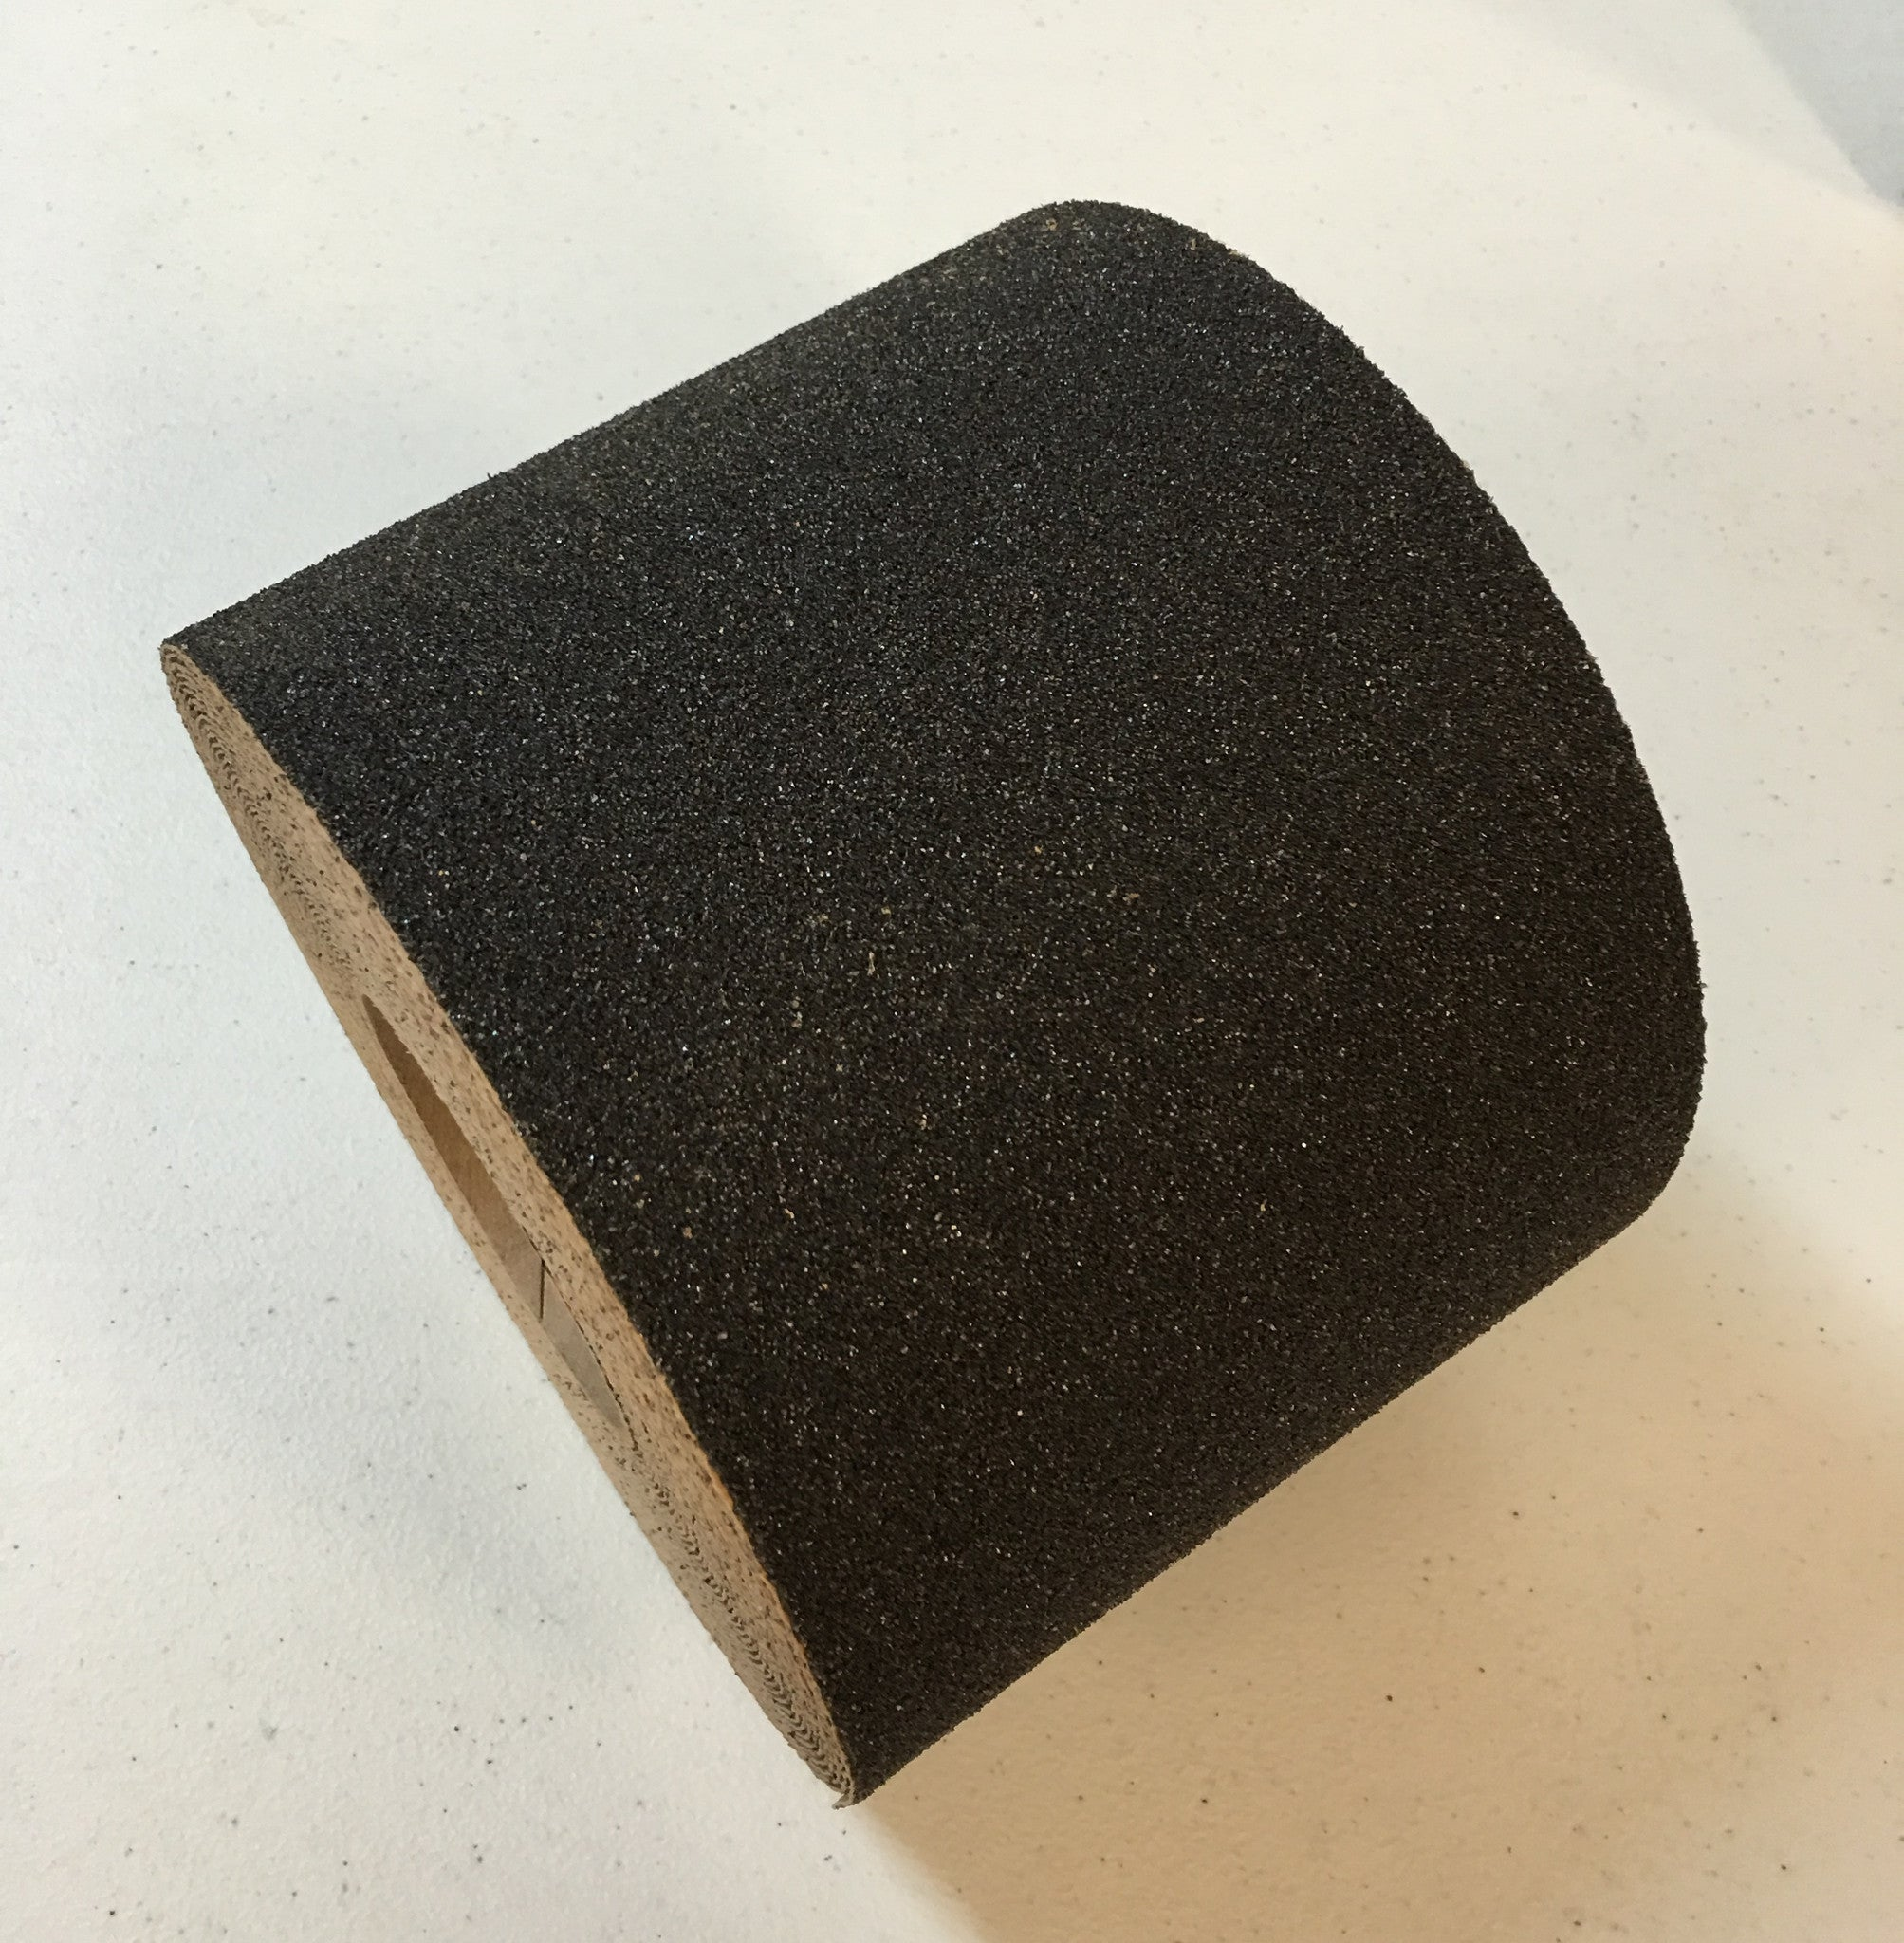 "12"" X 60' Foot Roll Sure Foot Heavy Duty AO 36 Grit Abrasive Anti Slip Non Skid Safety Tape Black 89214"